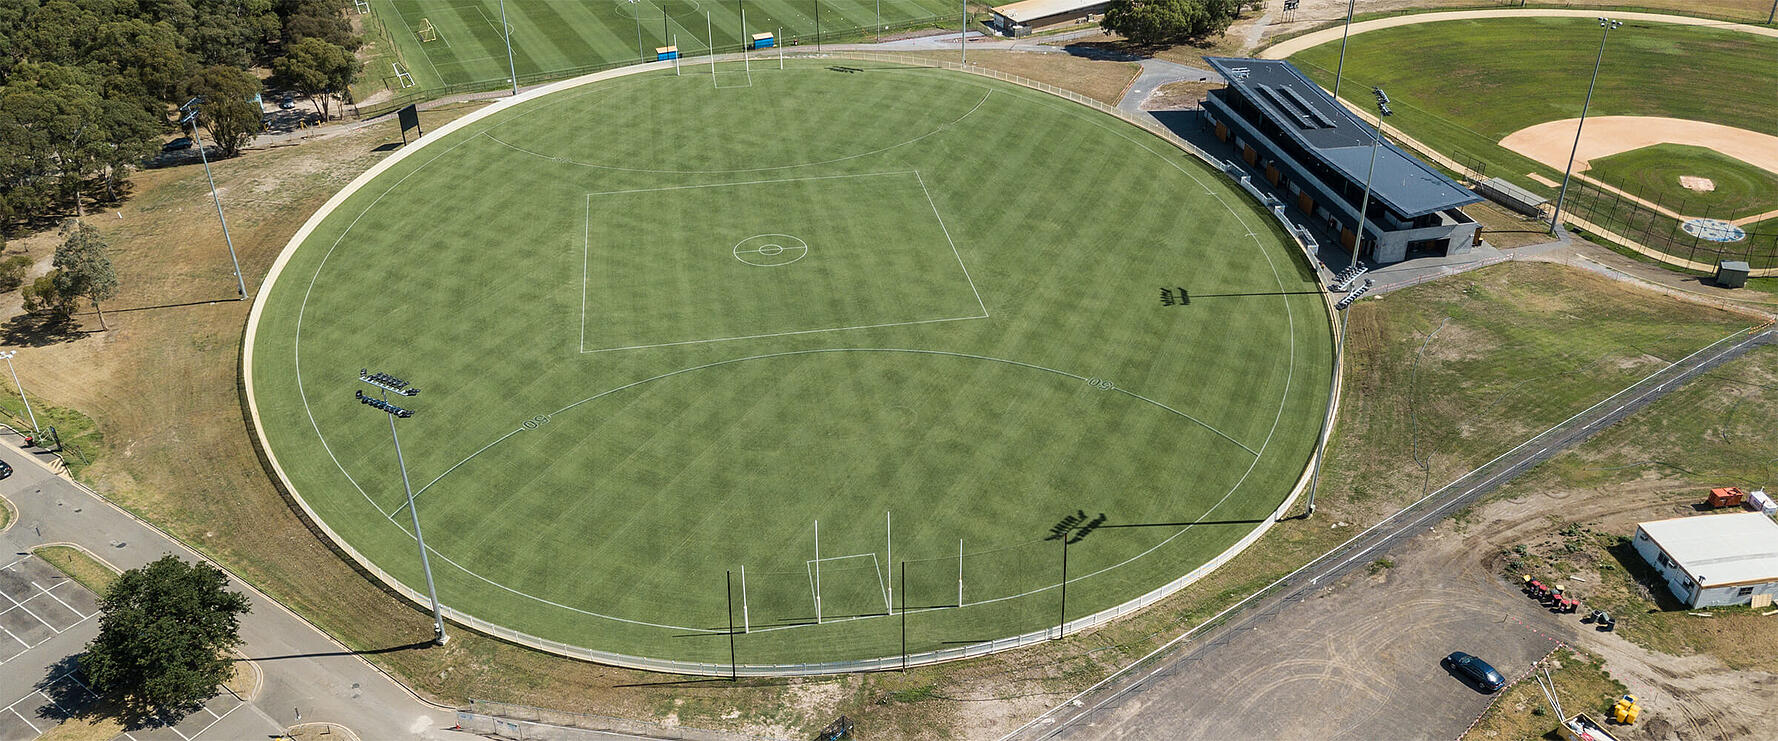 Aerial view of the La Trobe University natural turf AFL oval Field of Play